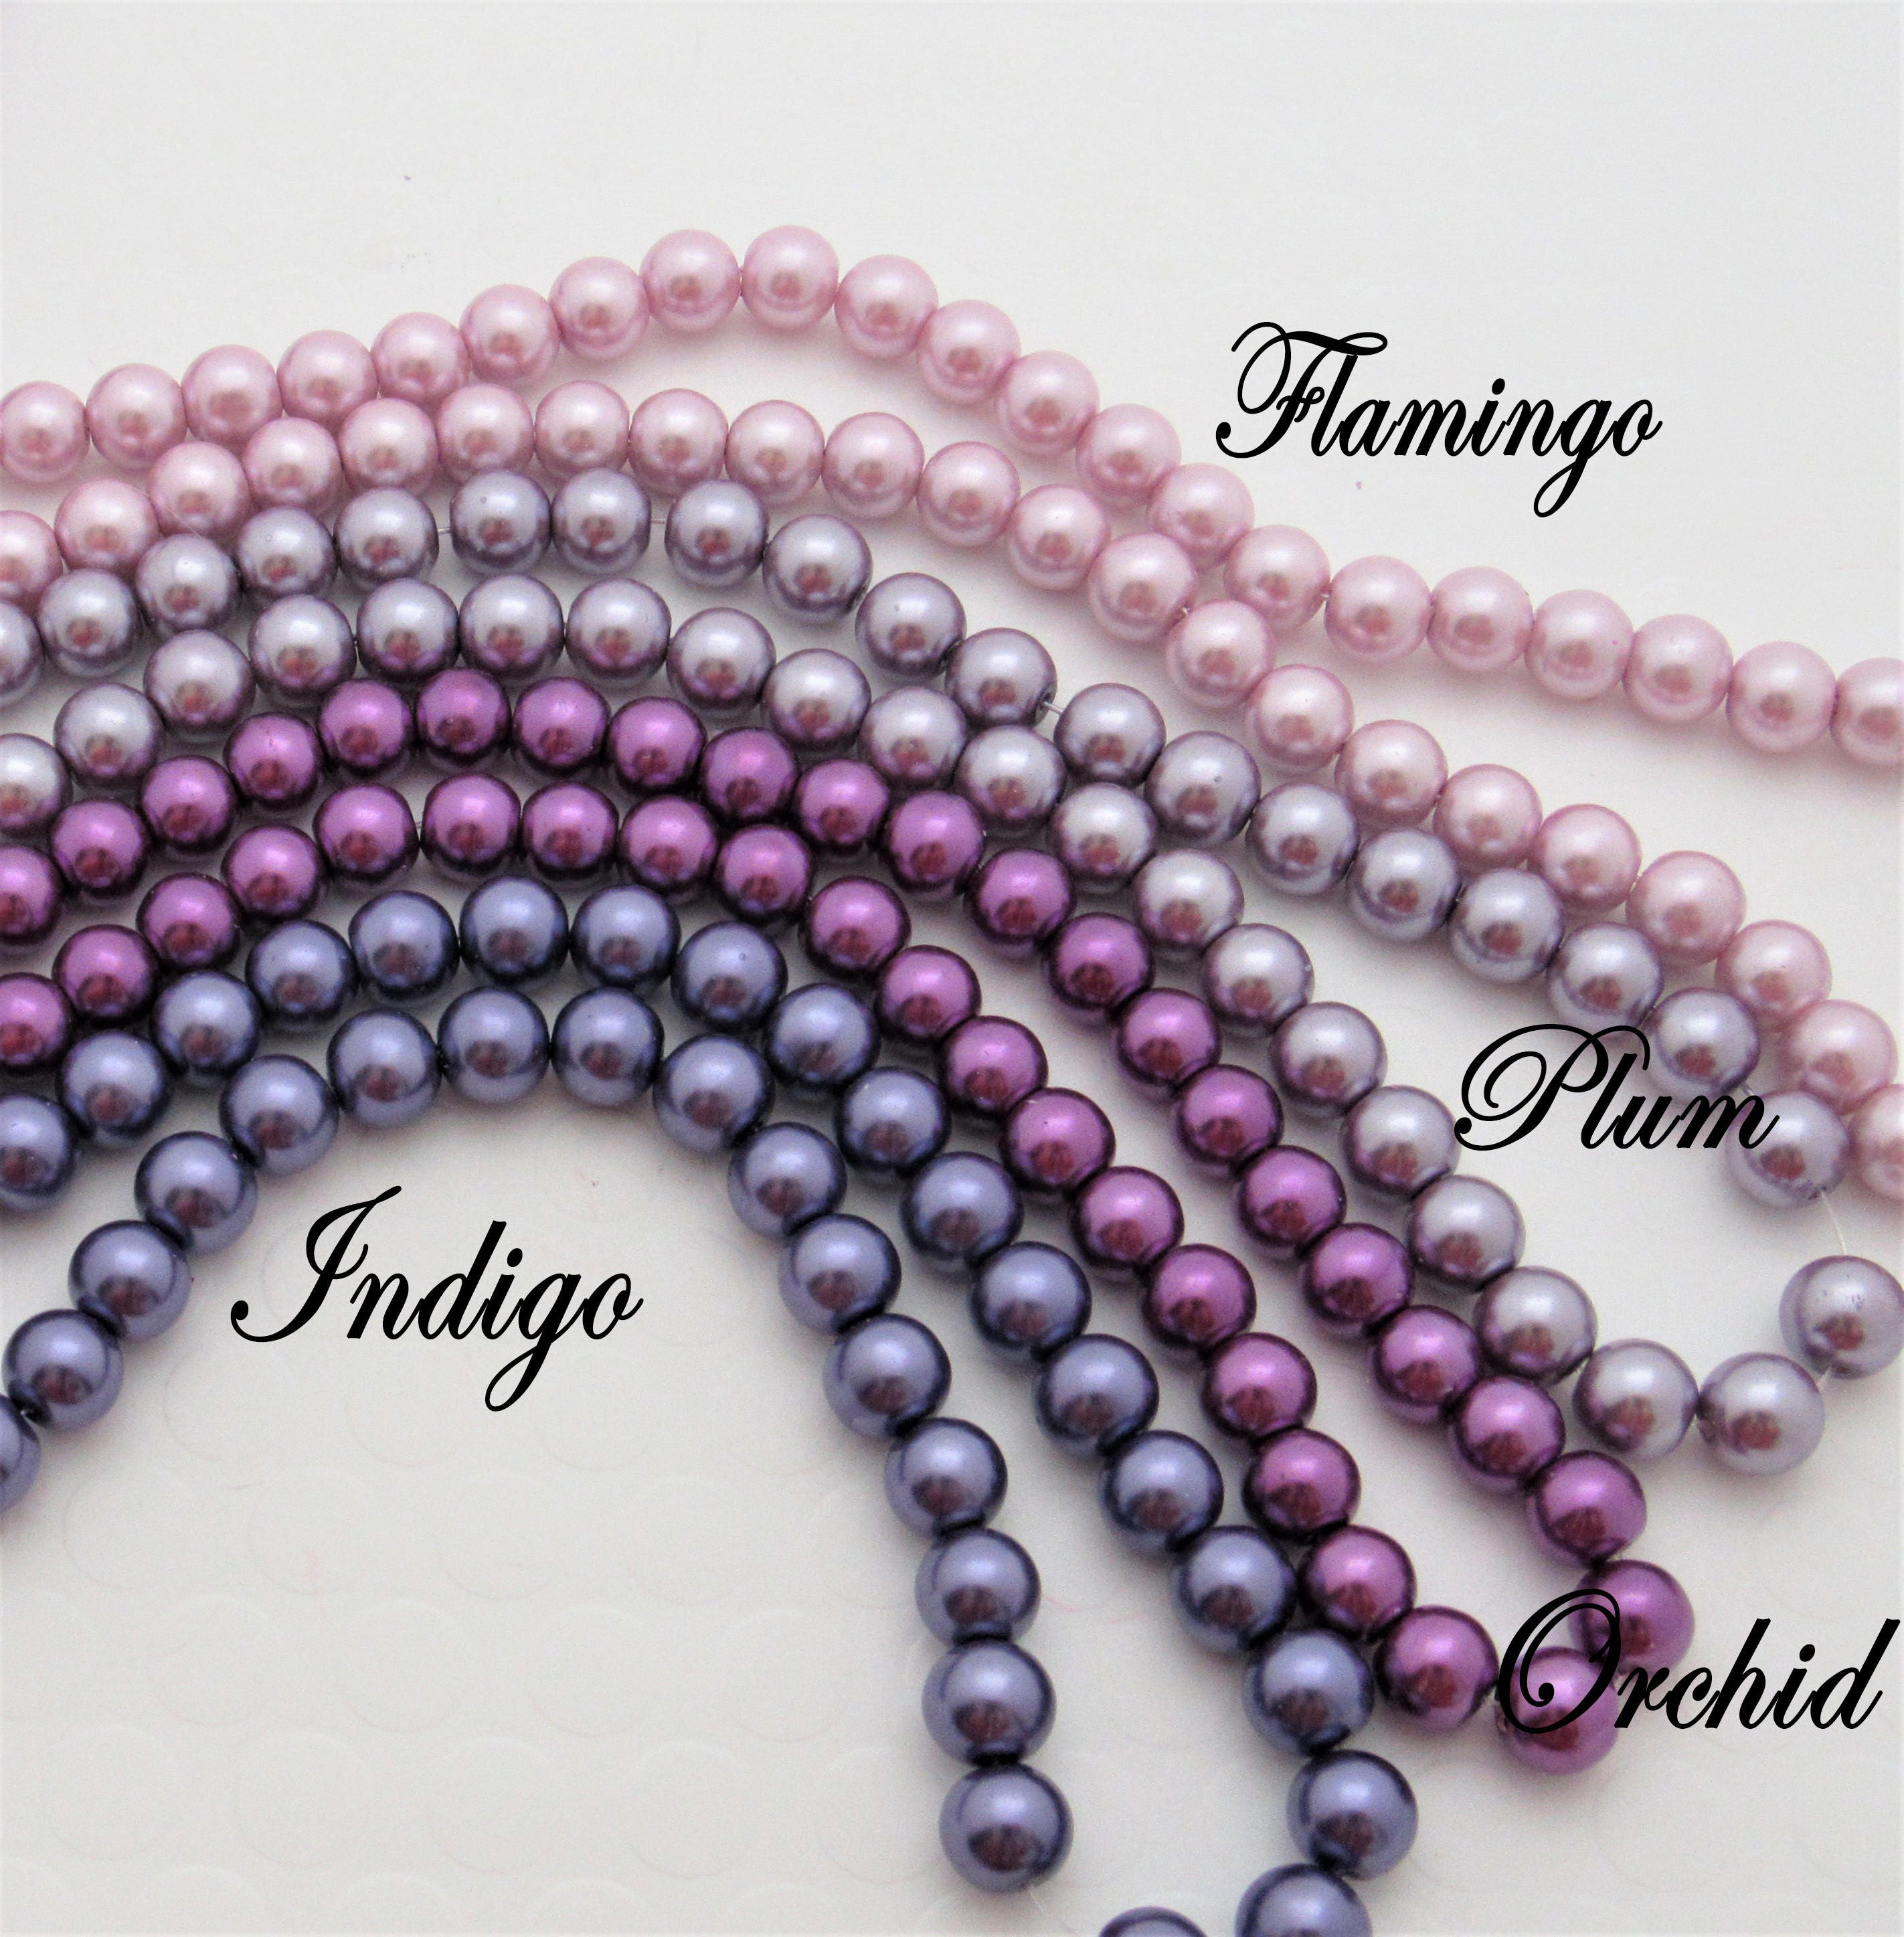 quotes product accessories indigo pearls pearl one fall pasiley cored stop b earrings toniq